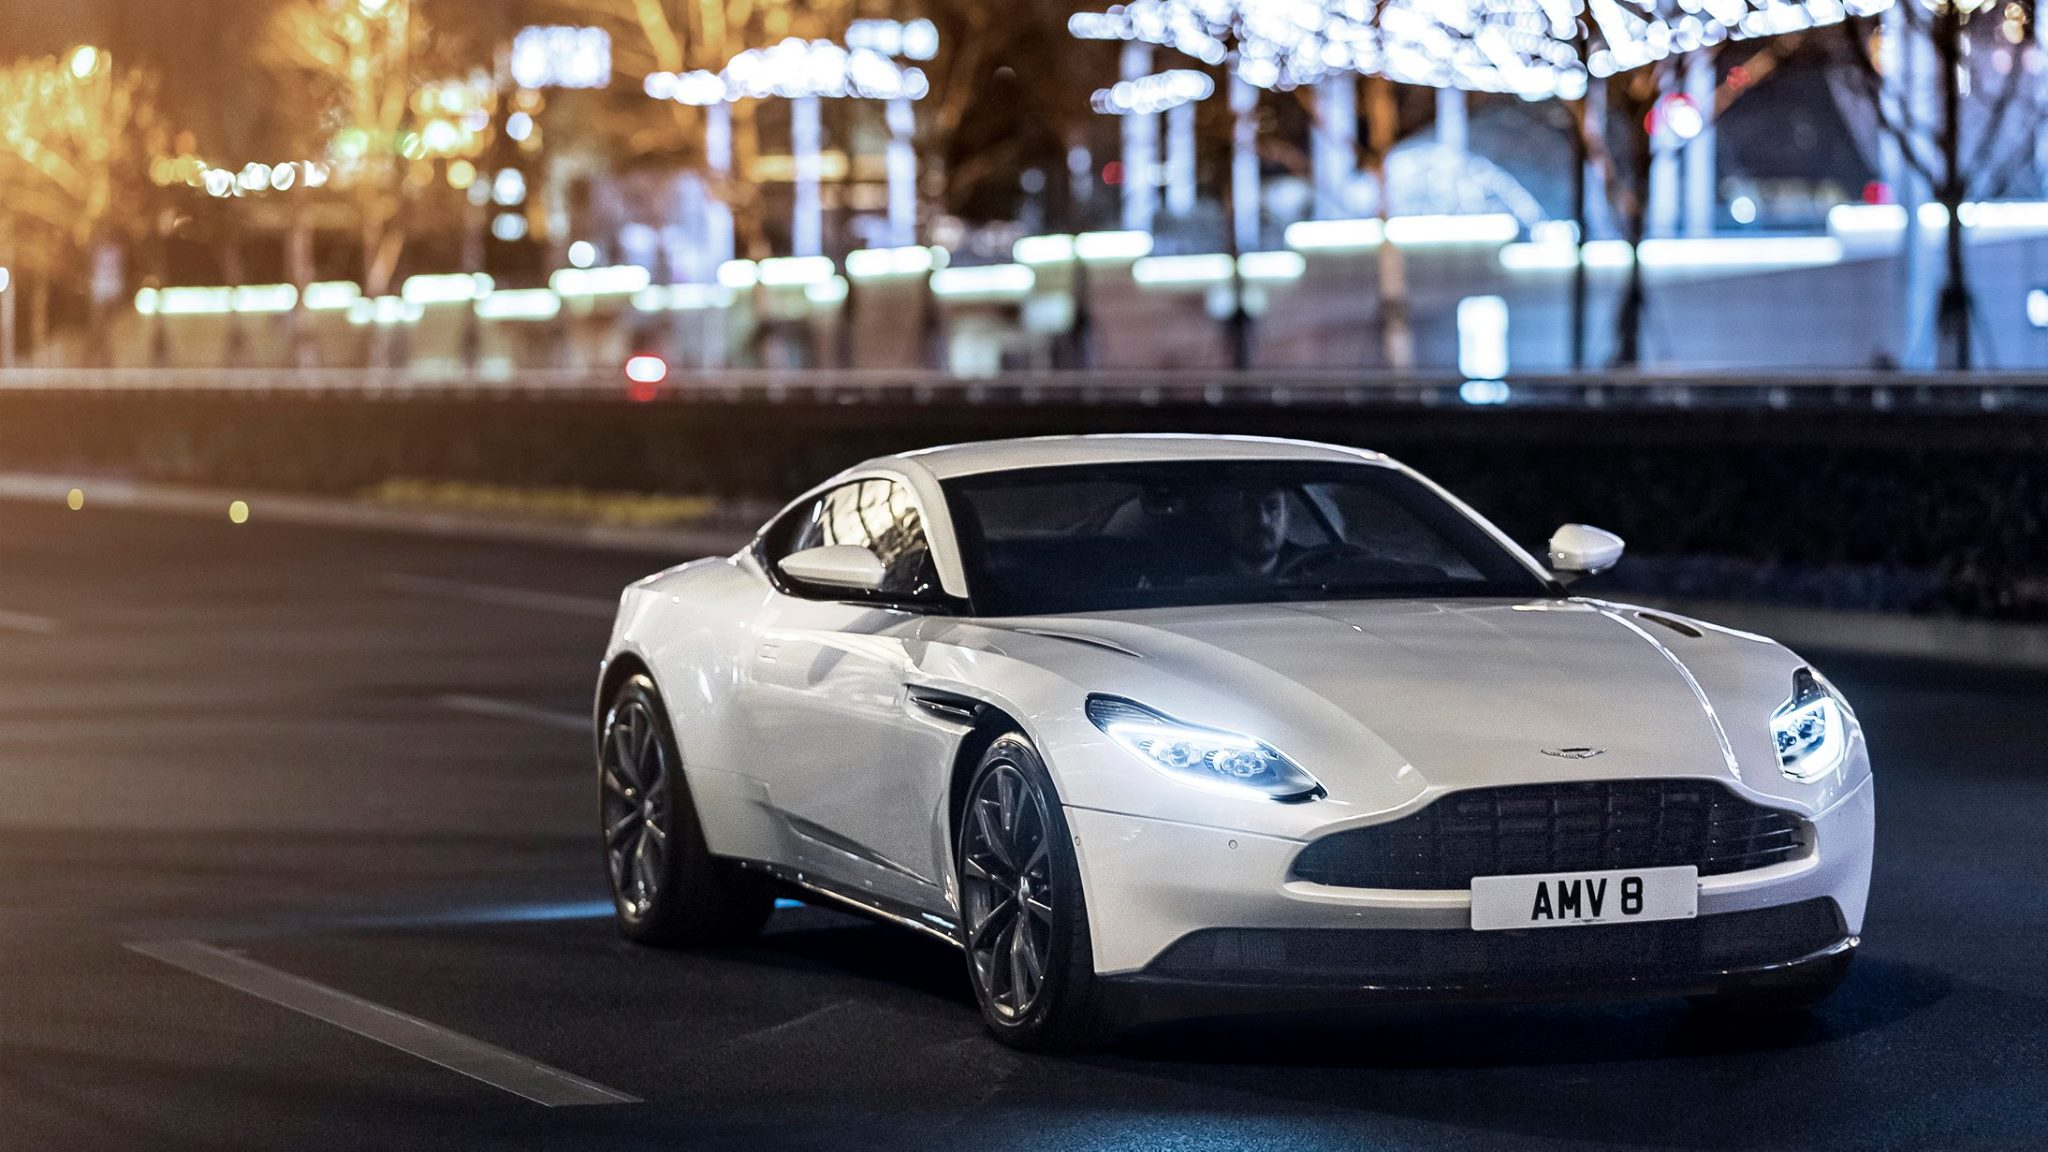 Aston Martin Made The Amg Powered V8 Db11 Sound More Aston